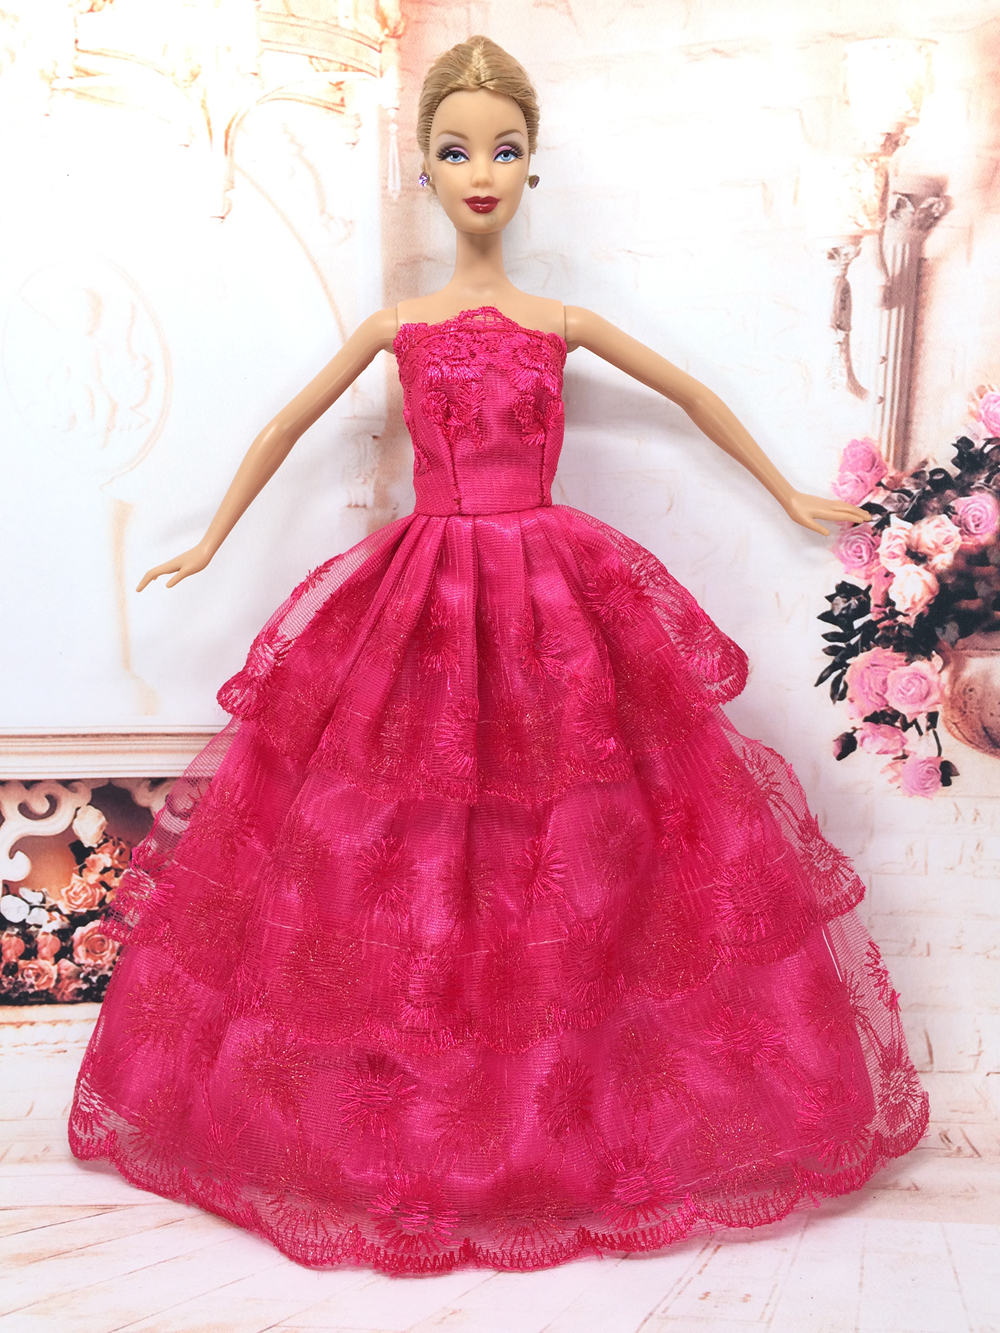 barbie dress for girl